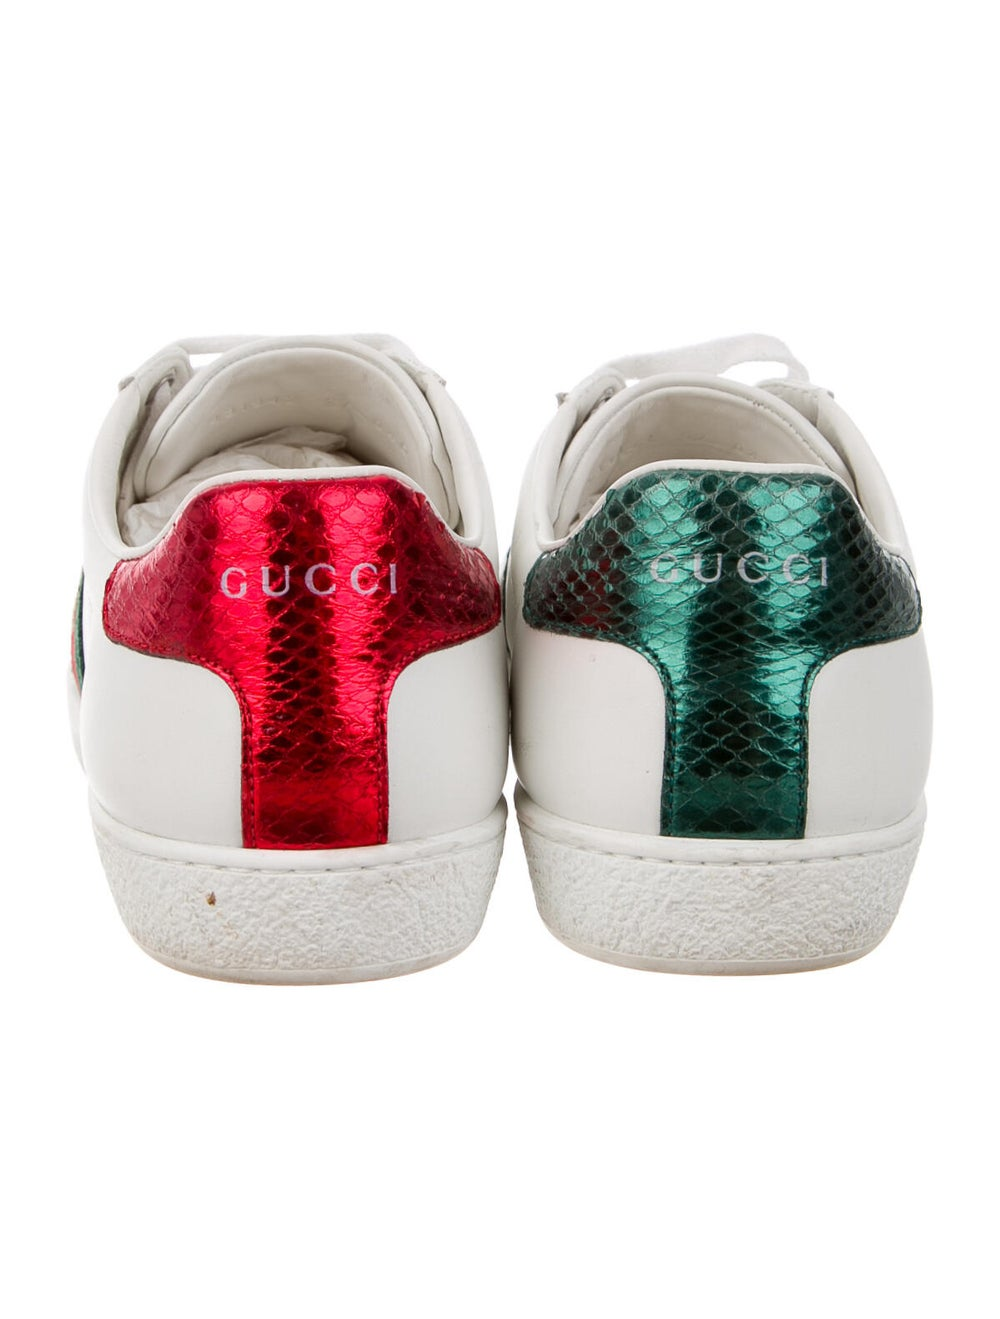 Gucci Leather Sneakers White - image 4